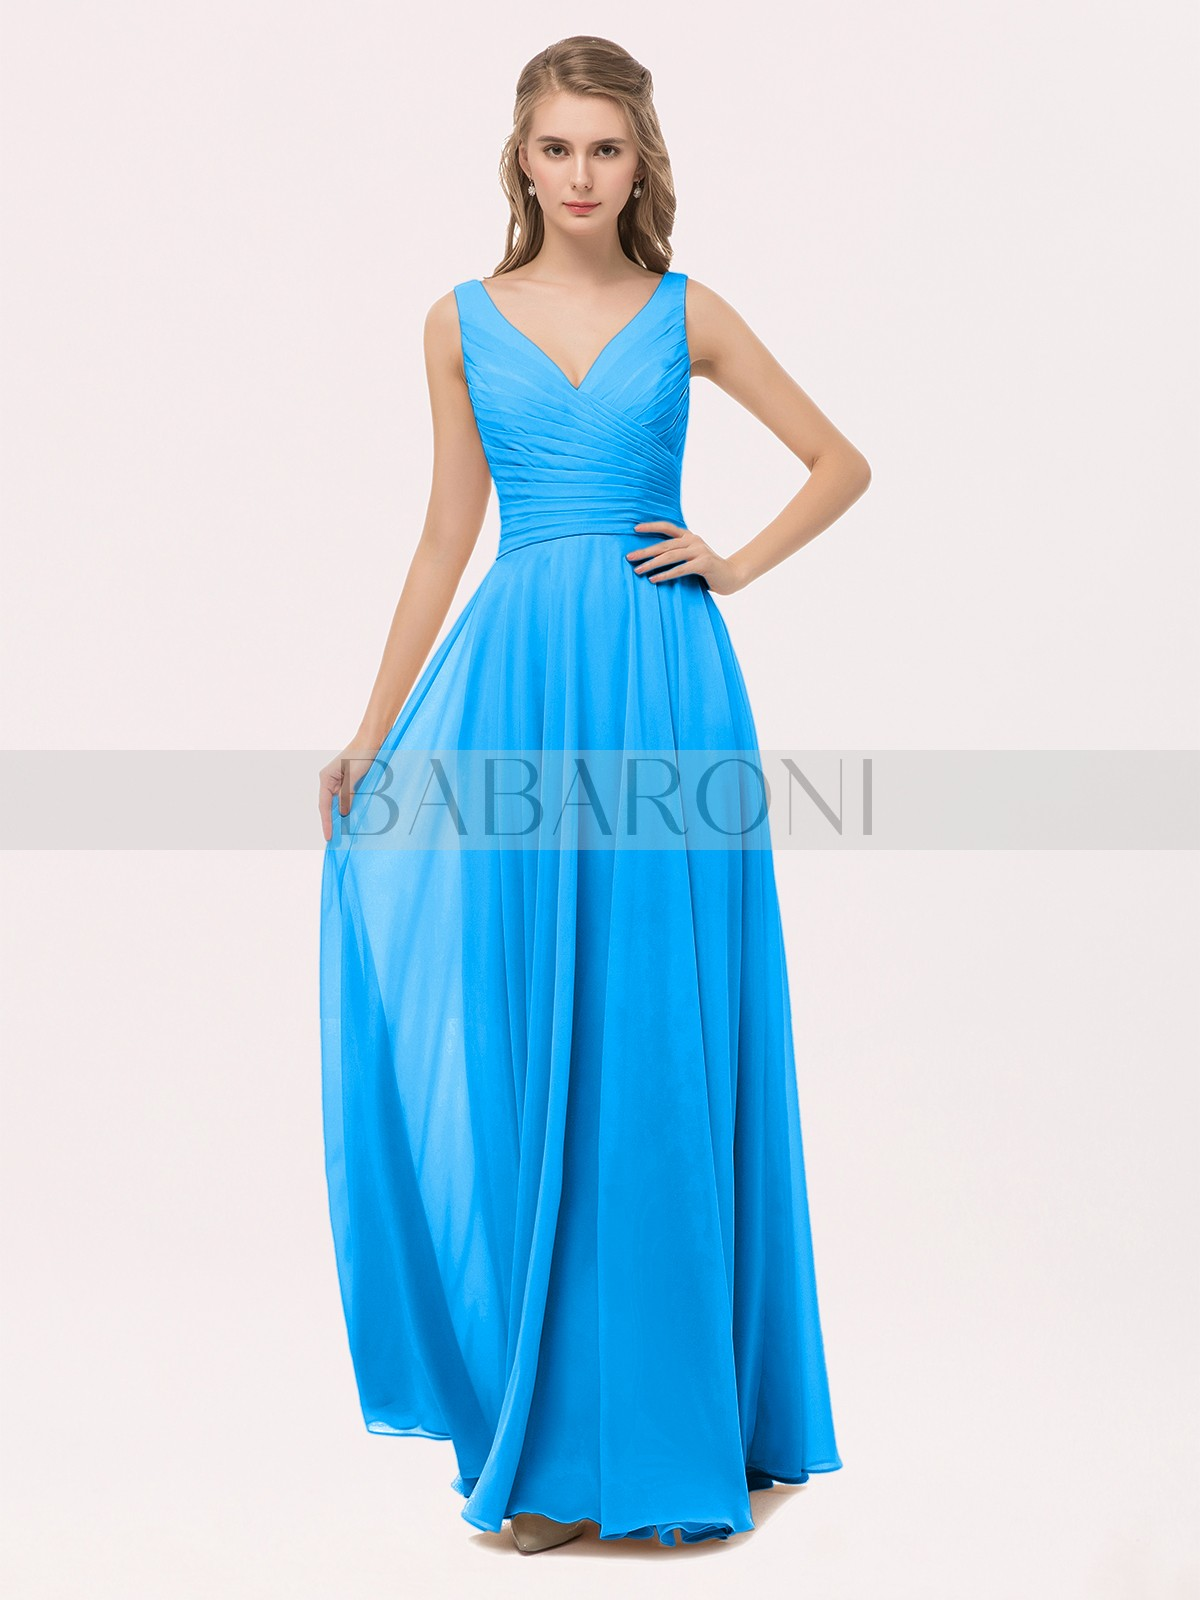 Home Bridesmaid Dresses Babaroni Ciopeia A Line Chiffon Peach Zipper Bow Sash Pleated Floor Length V Loading Zoom